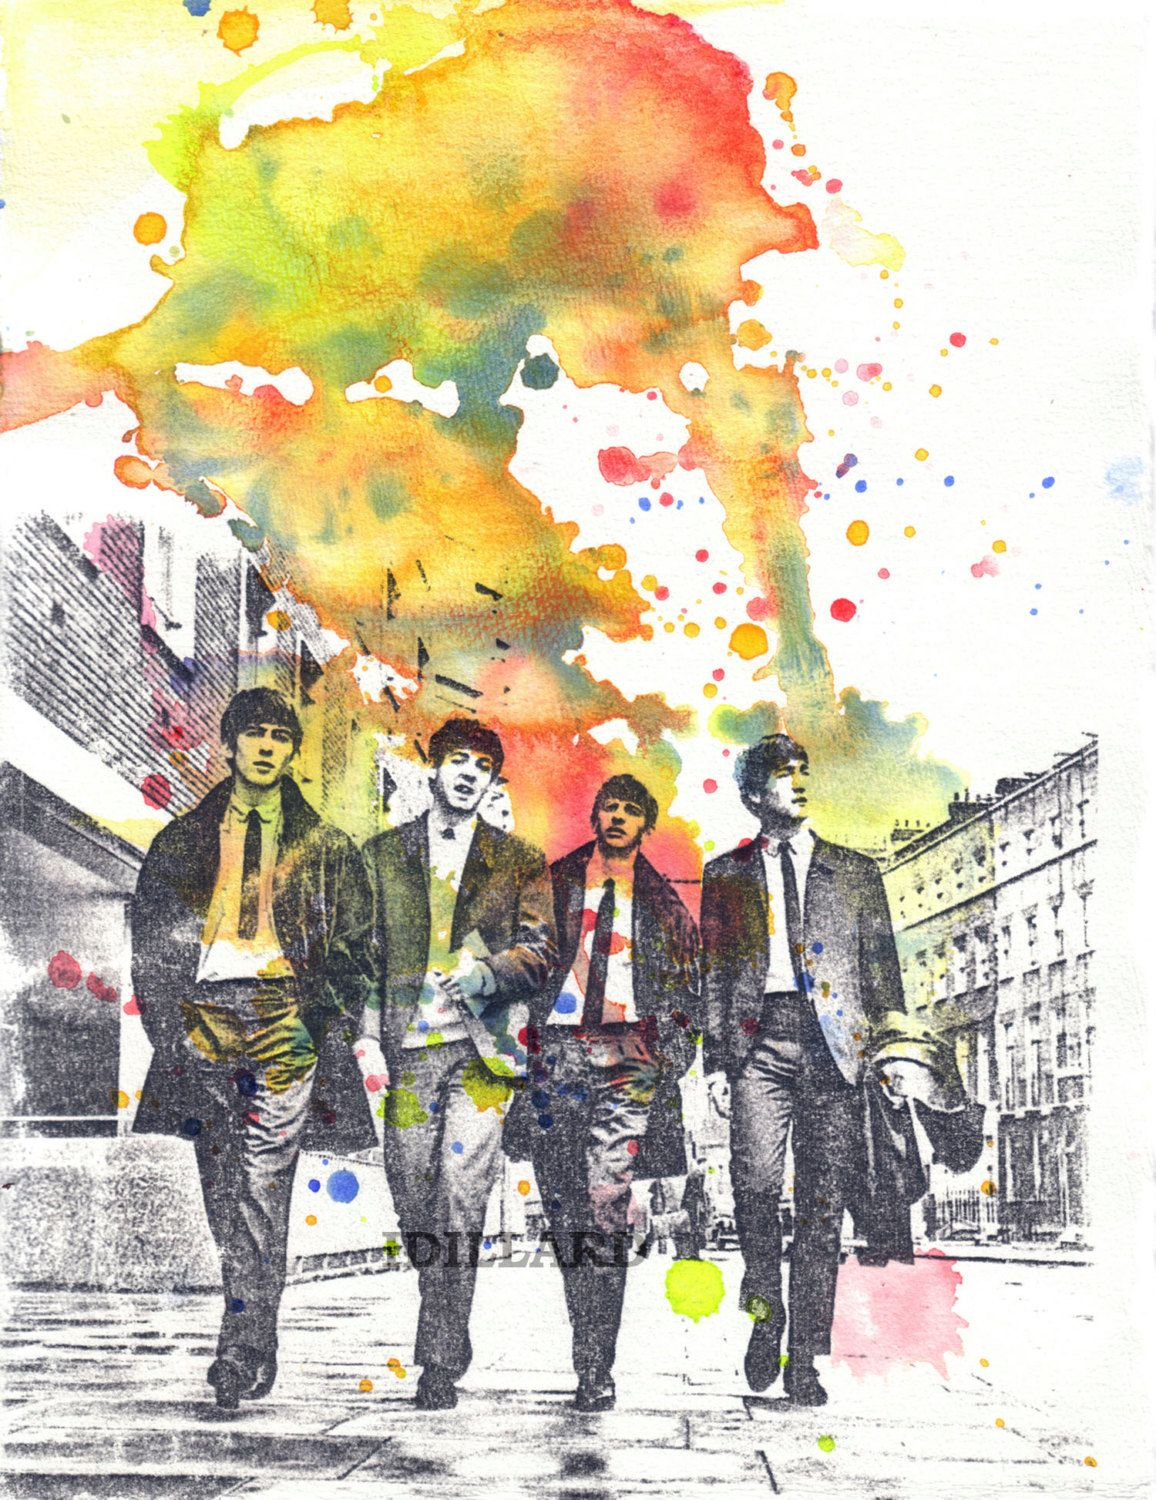 The Beatles Watercolor Painting Print - Fine Art print 8 X 10 in ...